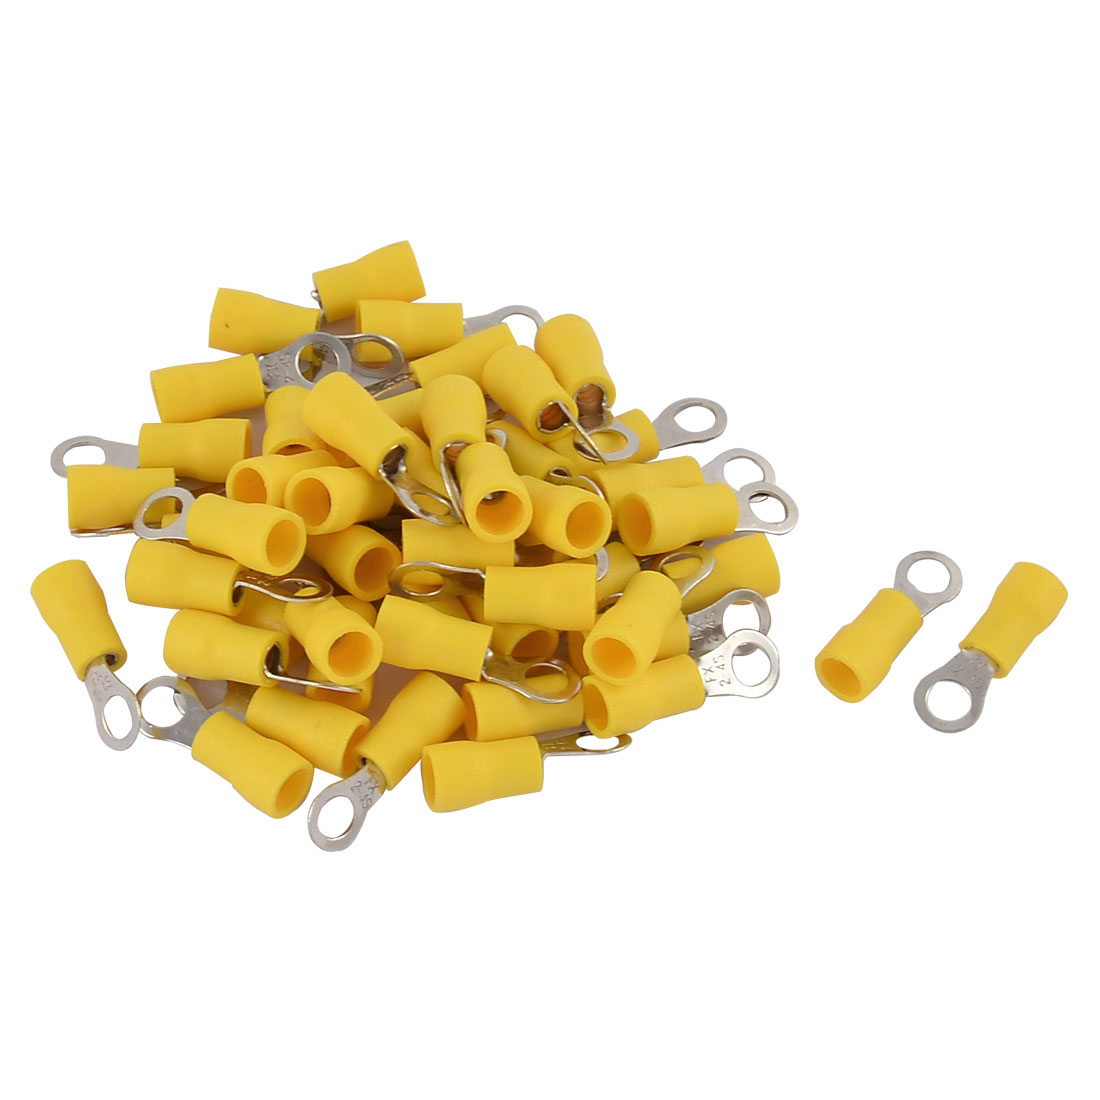 50pcs FX 2-4S 16-14 AWG Gauge Pre-insulated Ring Terminals Connector Yellow